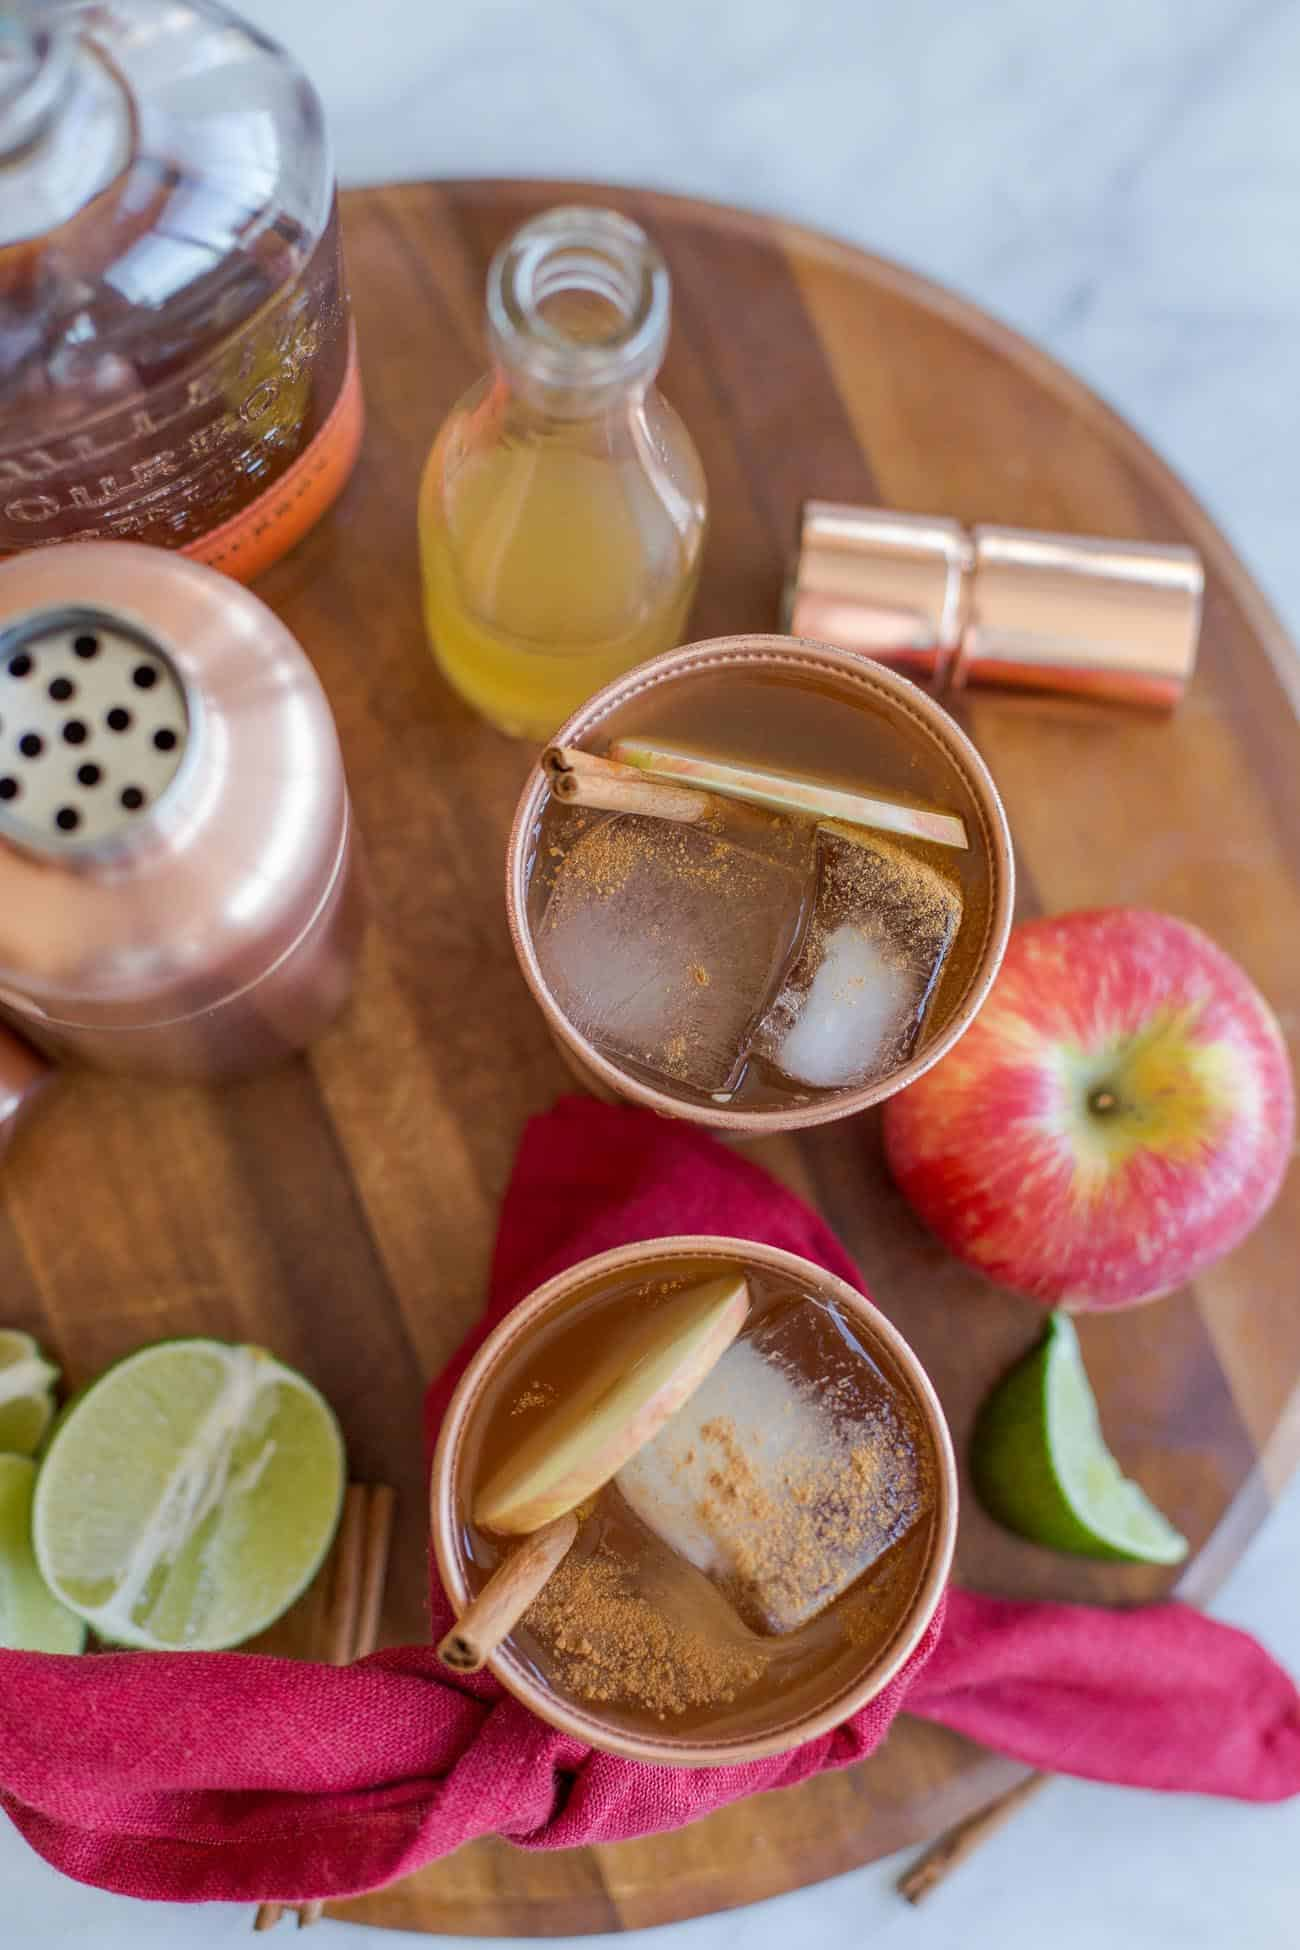 apple cider julep recipe, fall cocktails, holiday cocktails with apples, apple cider cocktail - My Style Vita @mystylevita